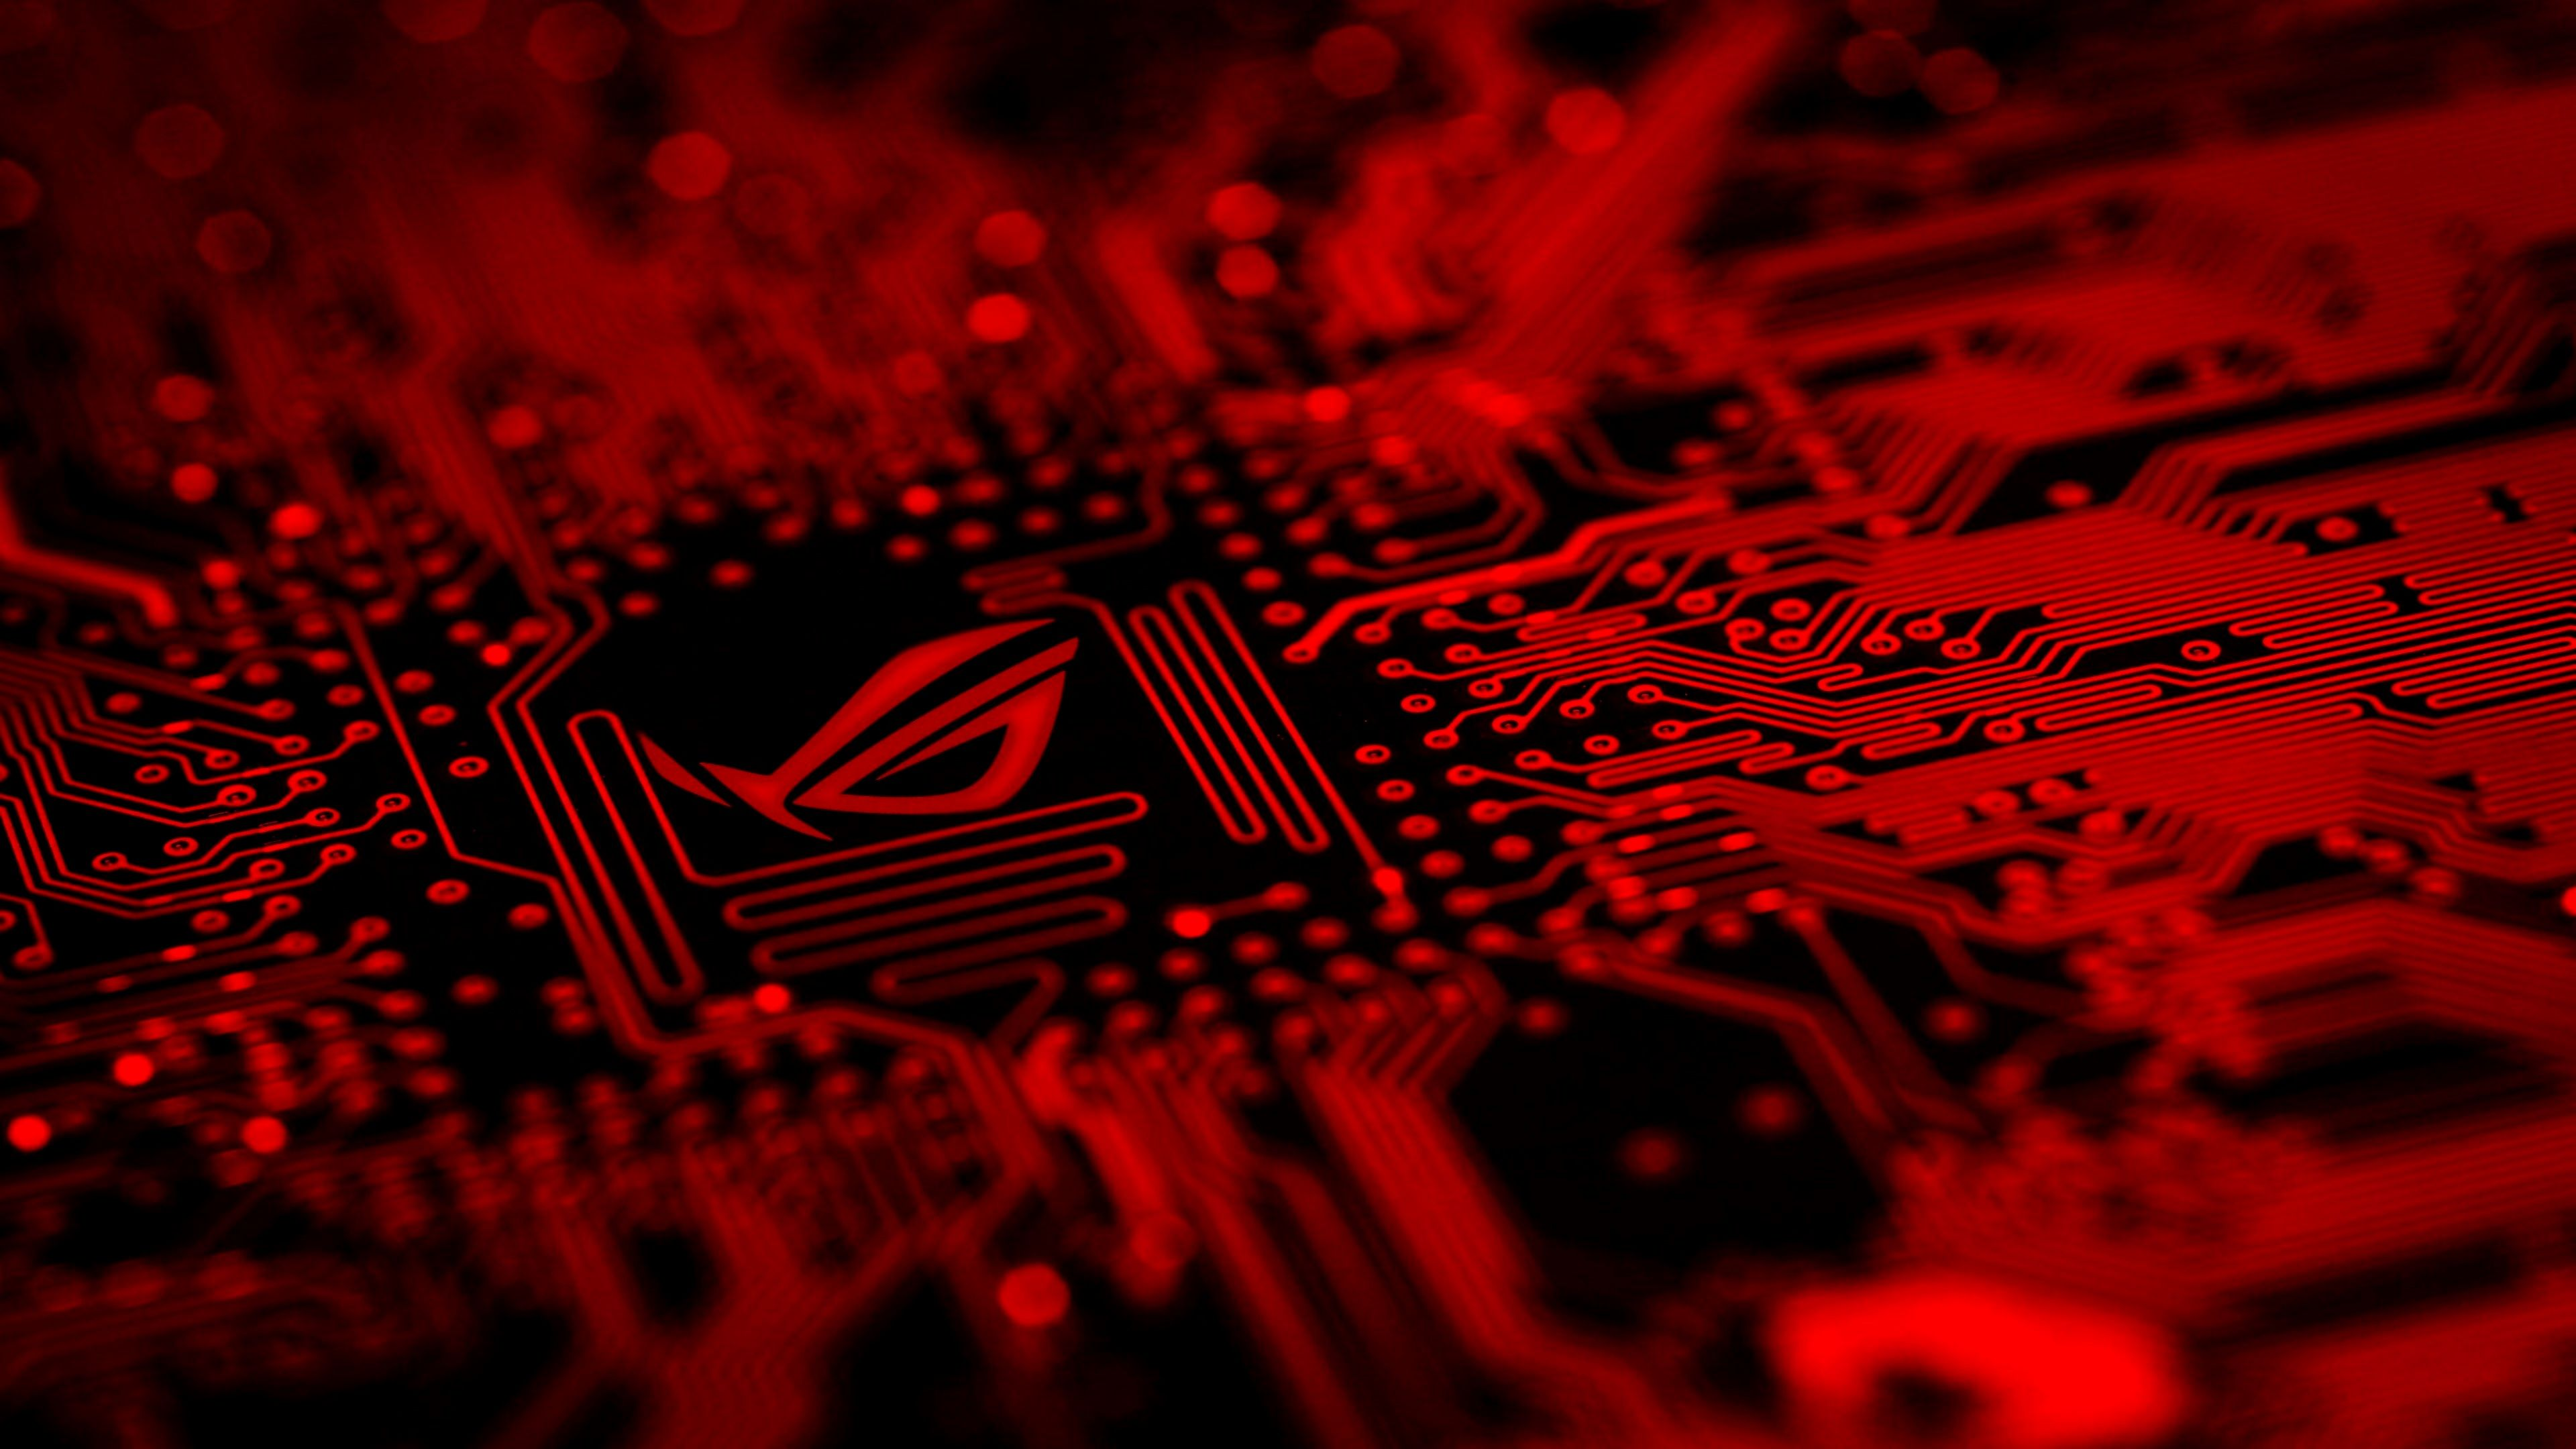 Asus Rog Wallpaper 4k Mobile Ideas Wallpaper Ponsel Seni Dekorasi